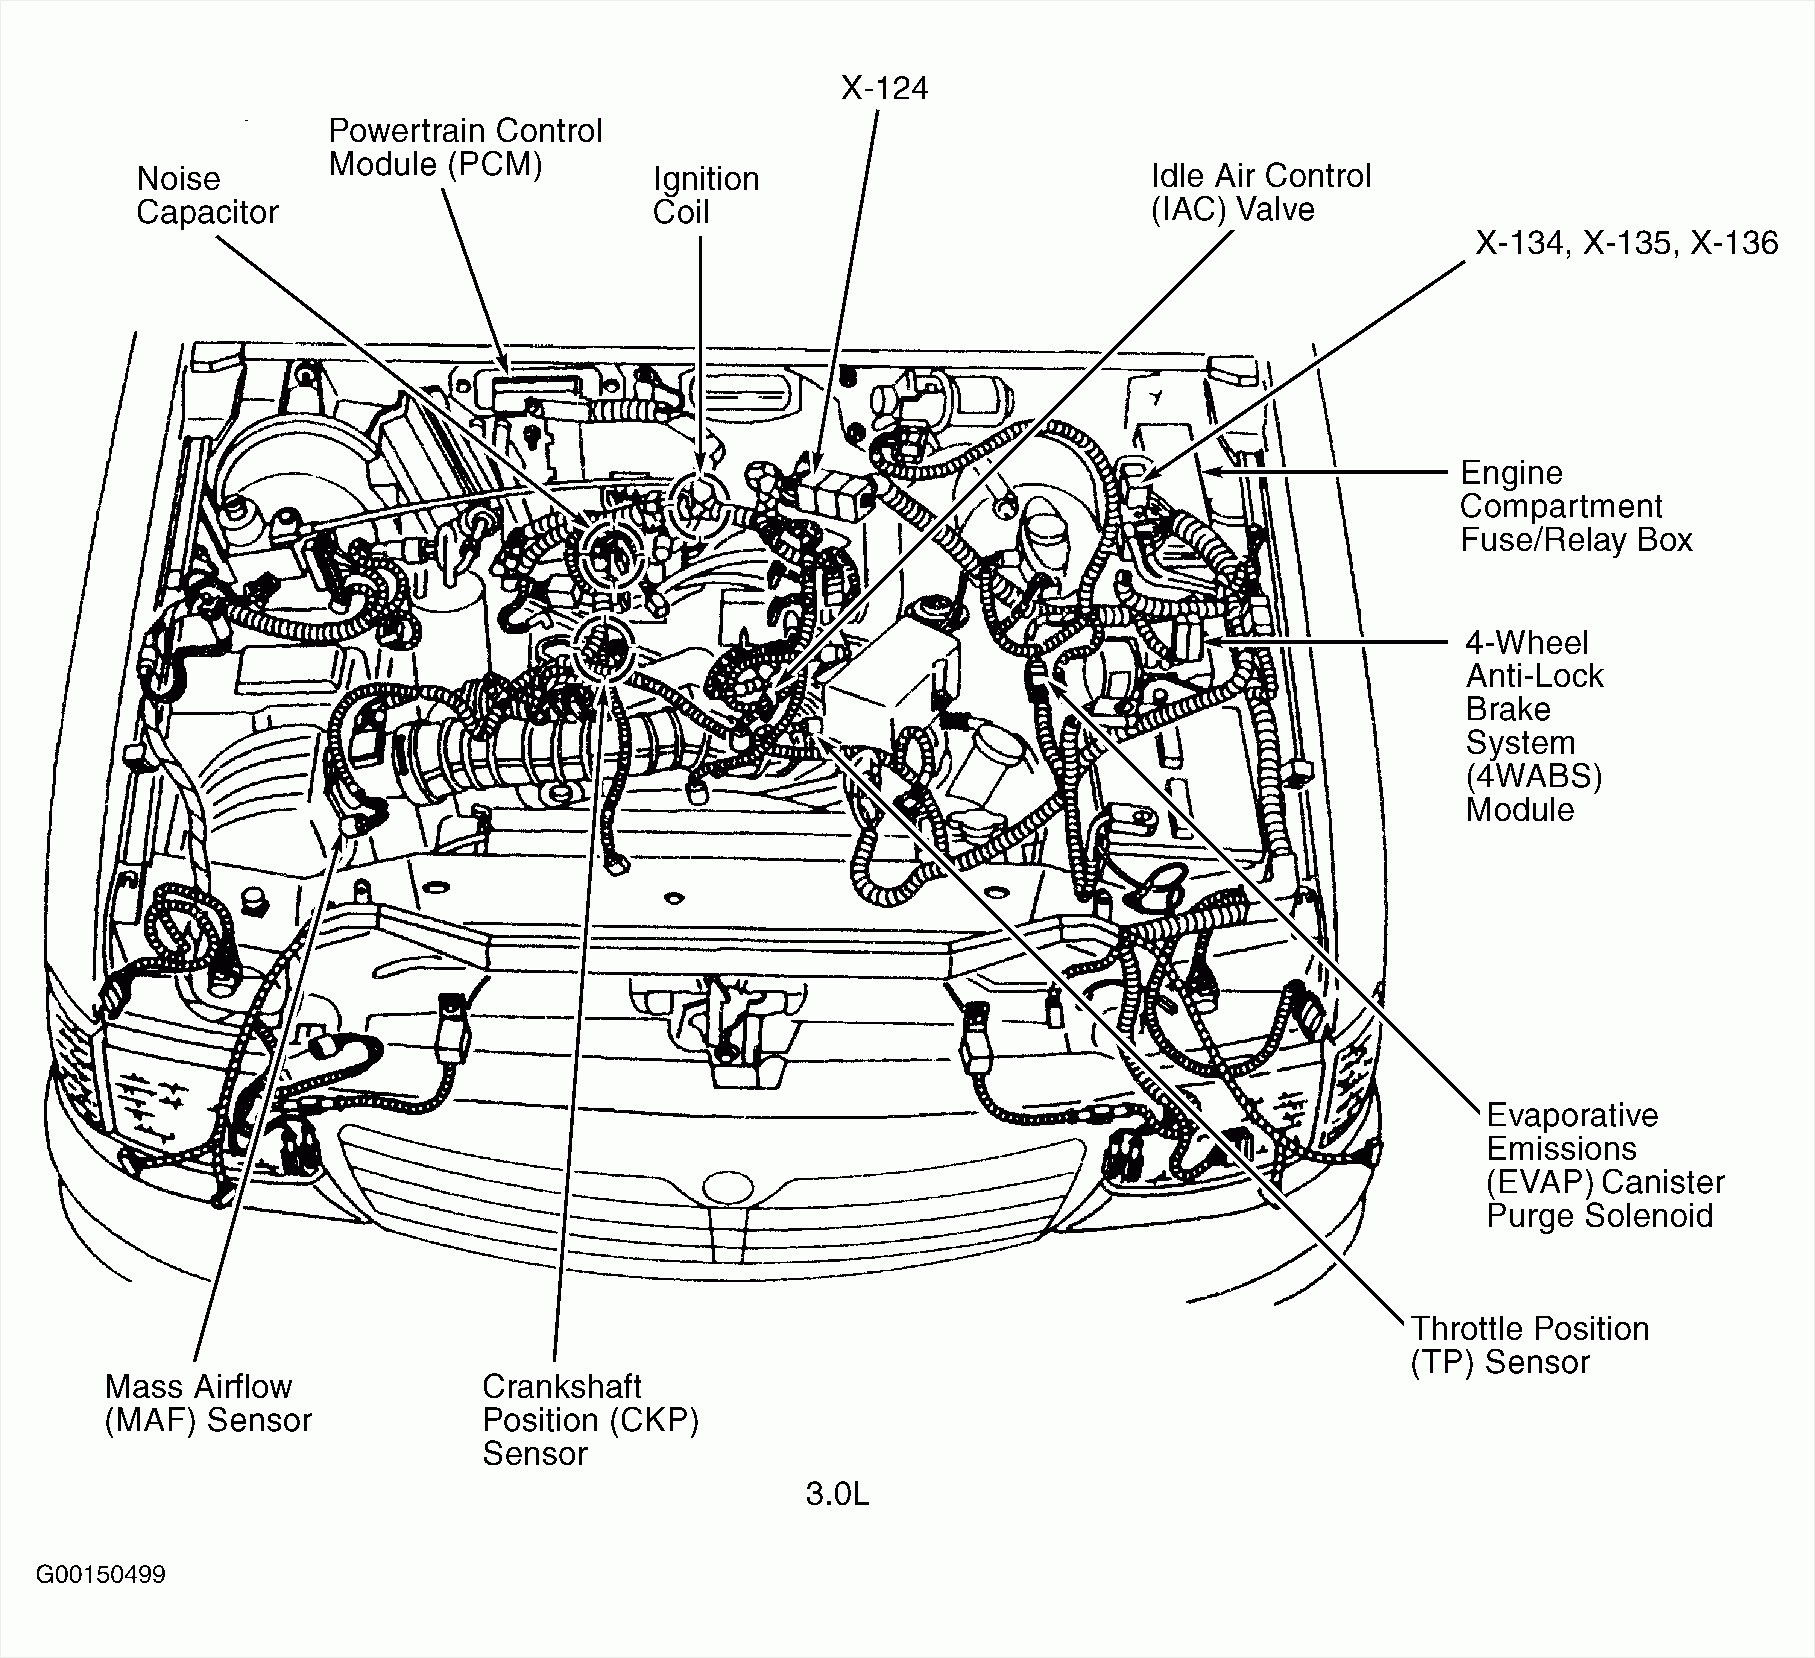 Saturn V6 Engine Diagram Great Installation Of Wiring 2001 L200 2002 Vue Cooling System Library Rh 69 Codingcommunity De 2003 L300 2005